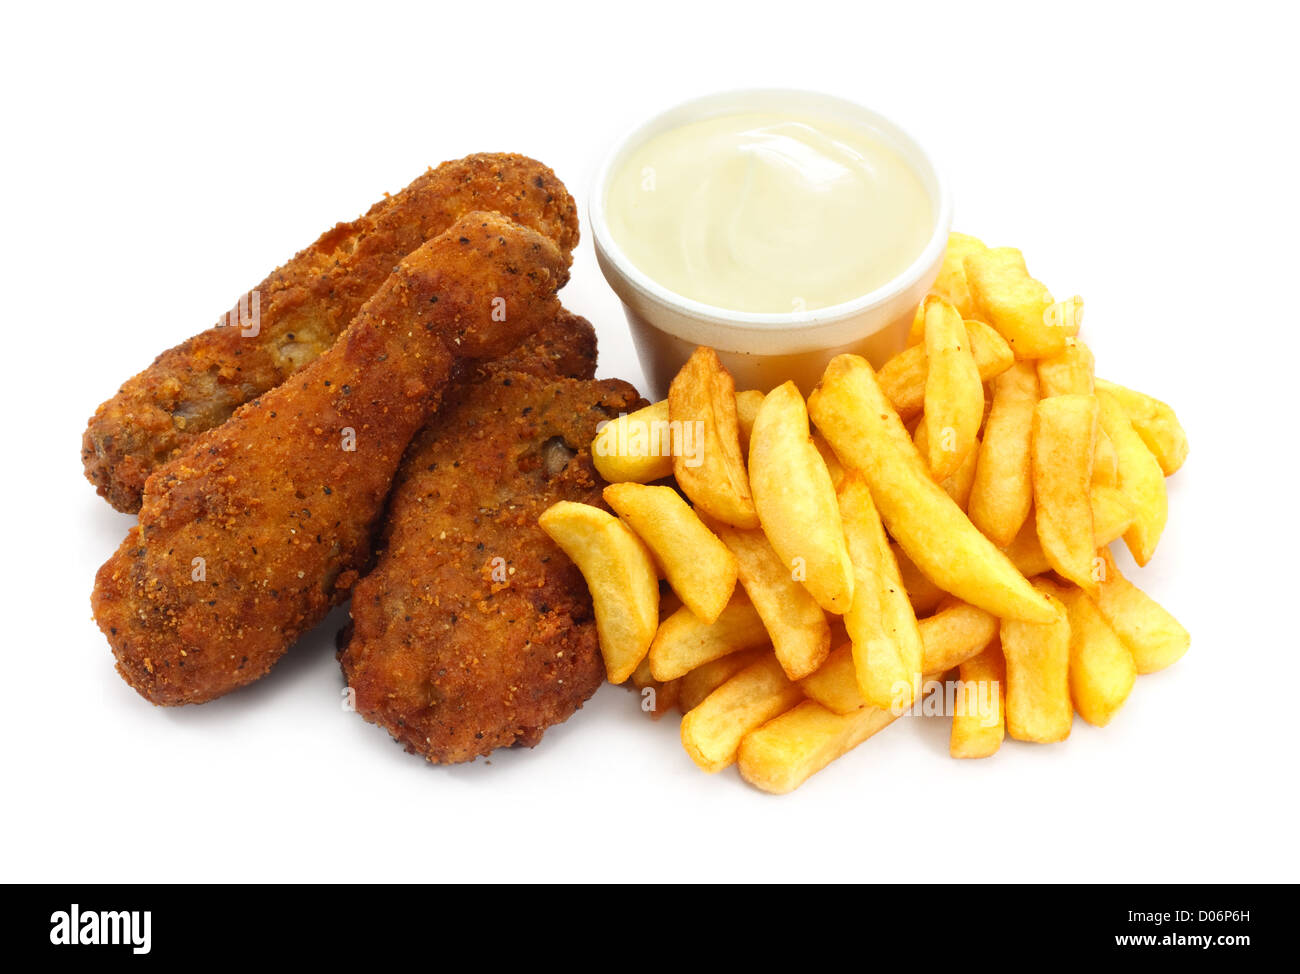 Three pieces of crispy southern fried chicken with fries - Stock Image